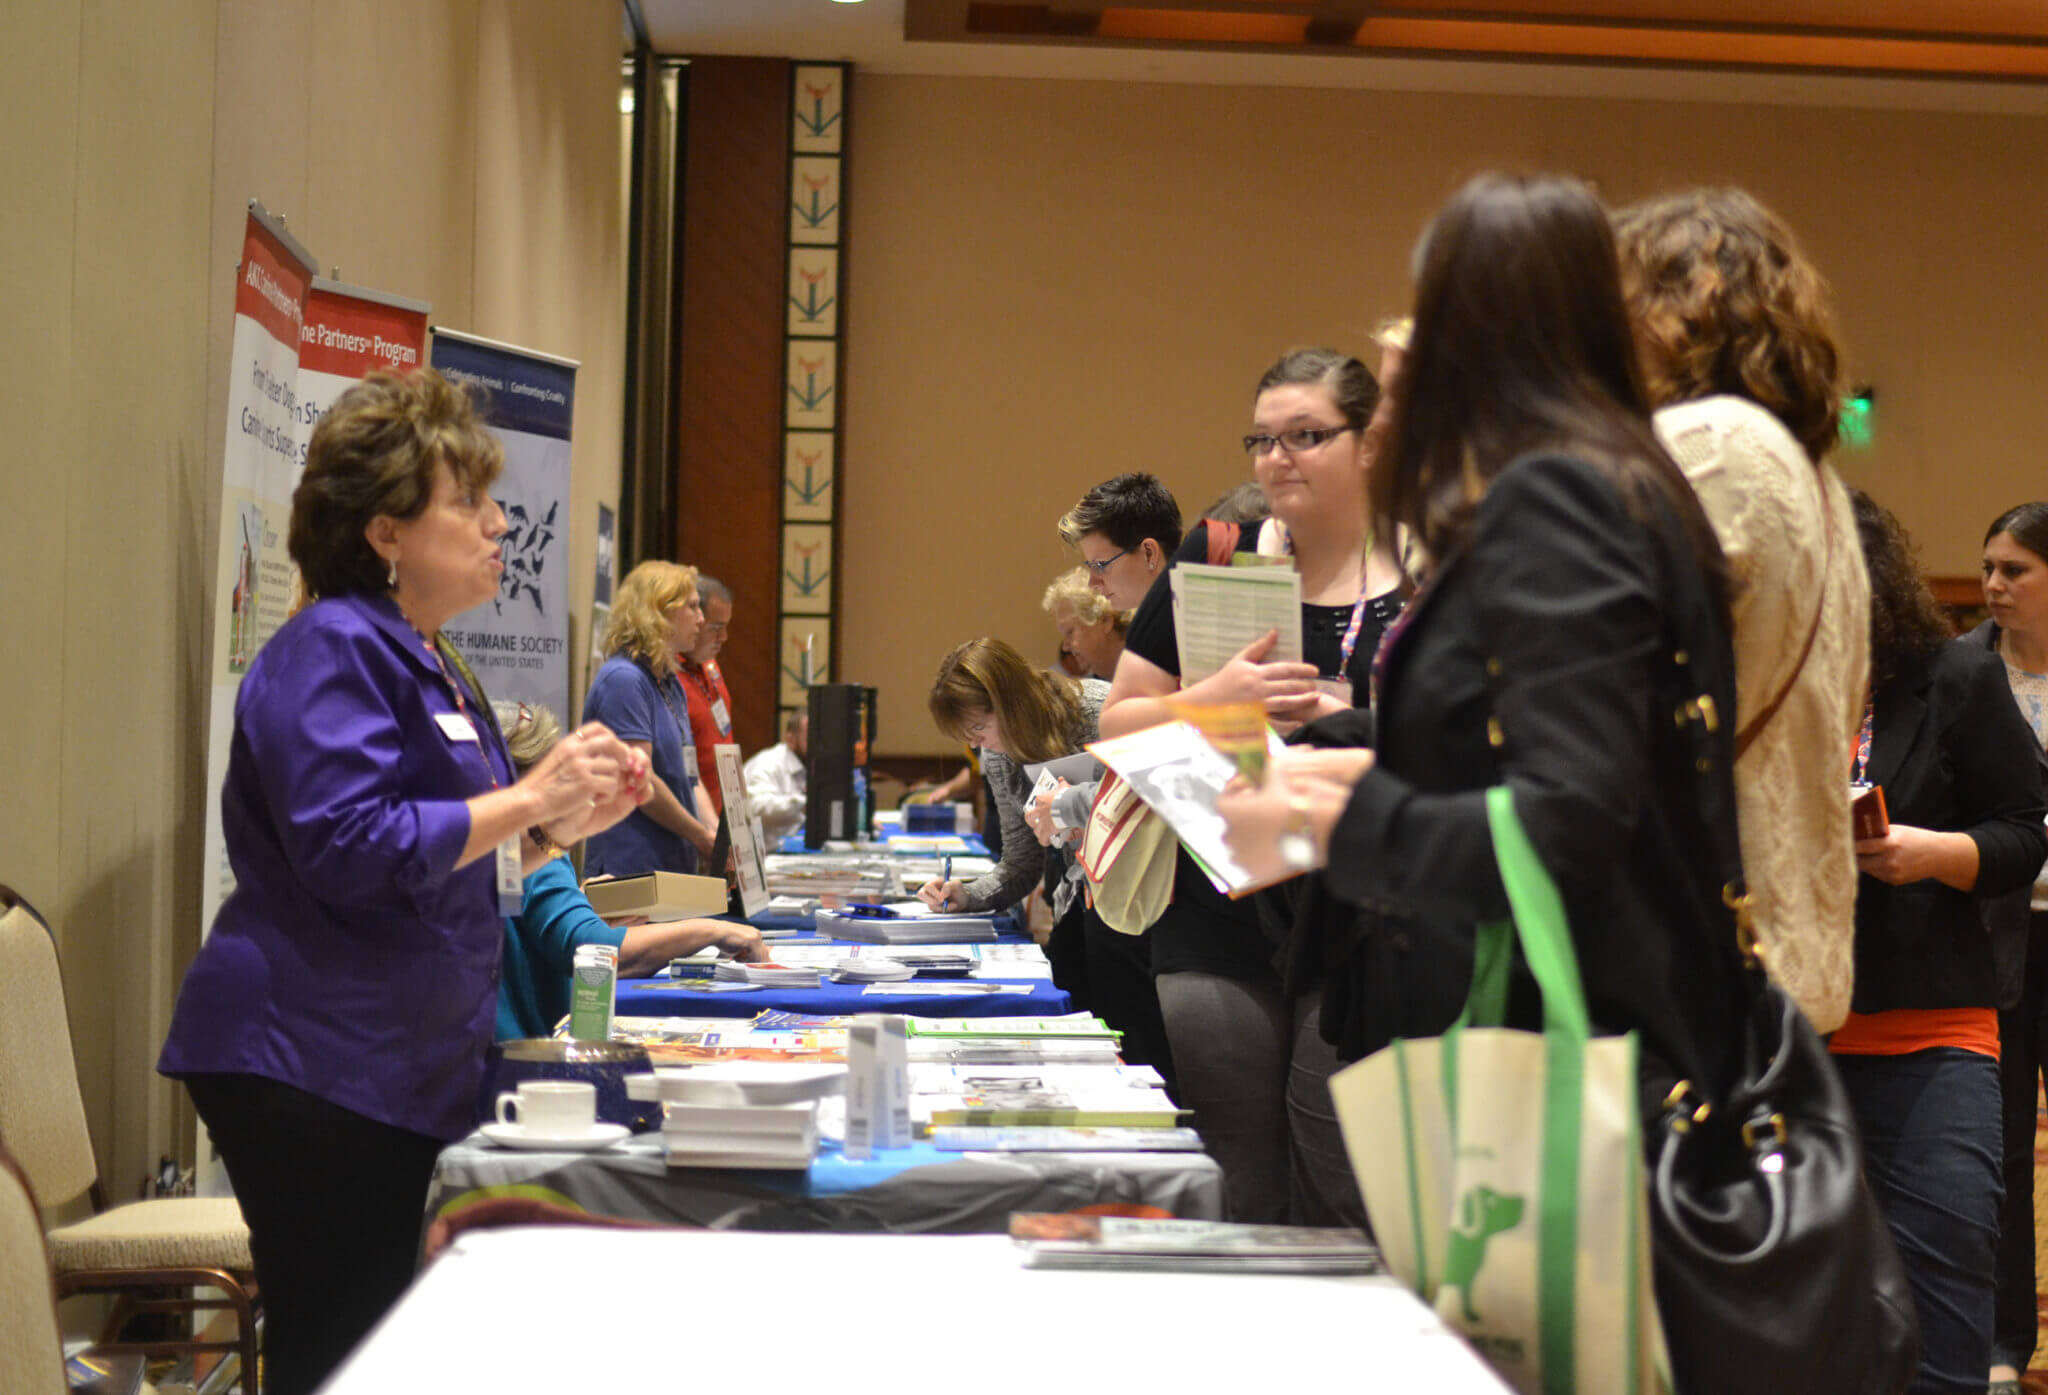 Conference sponsors were on hand in the exhibitor hall to share new and exciting products and services with attendees!